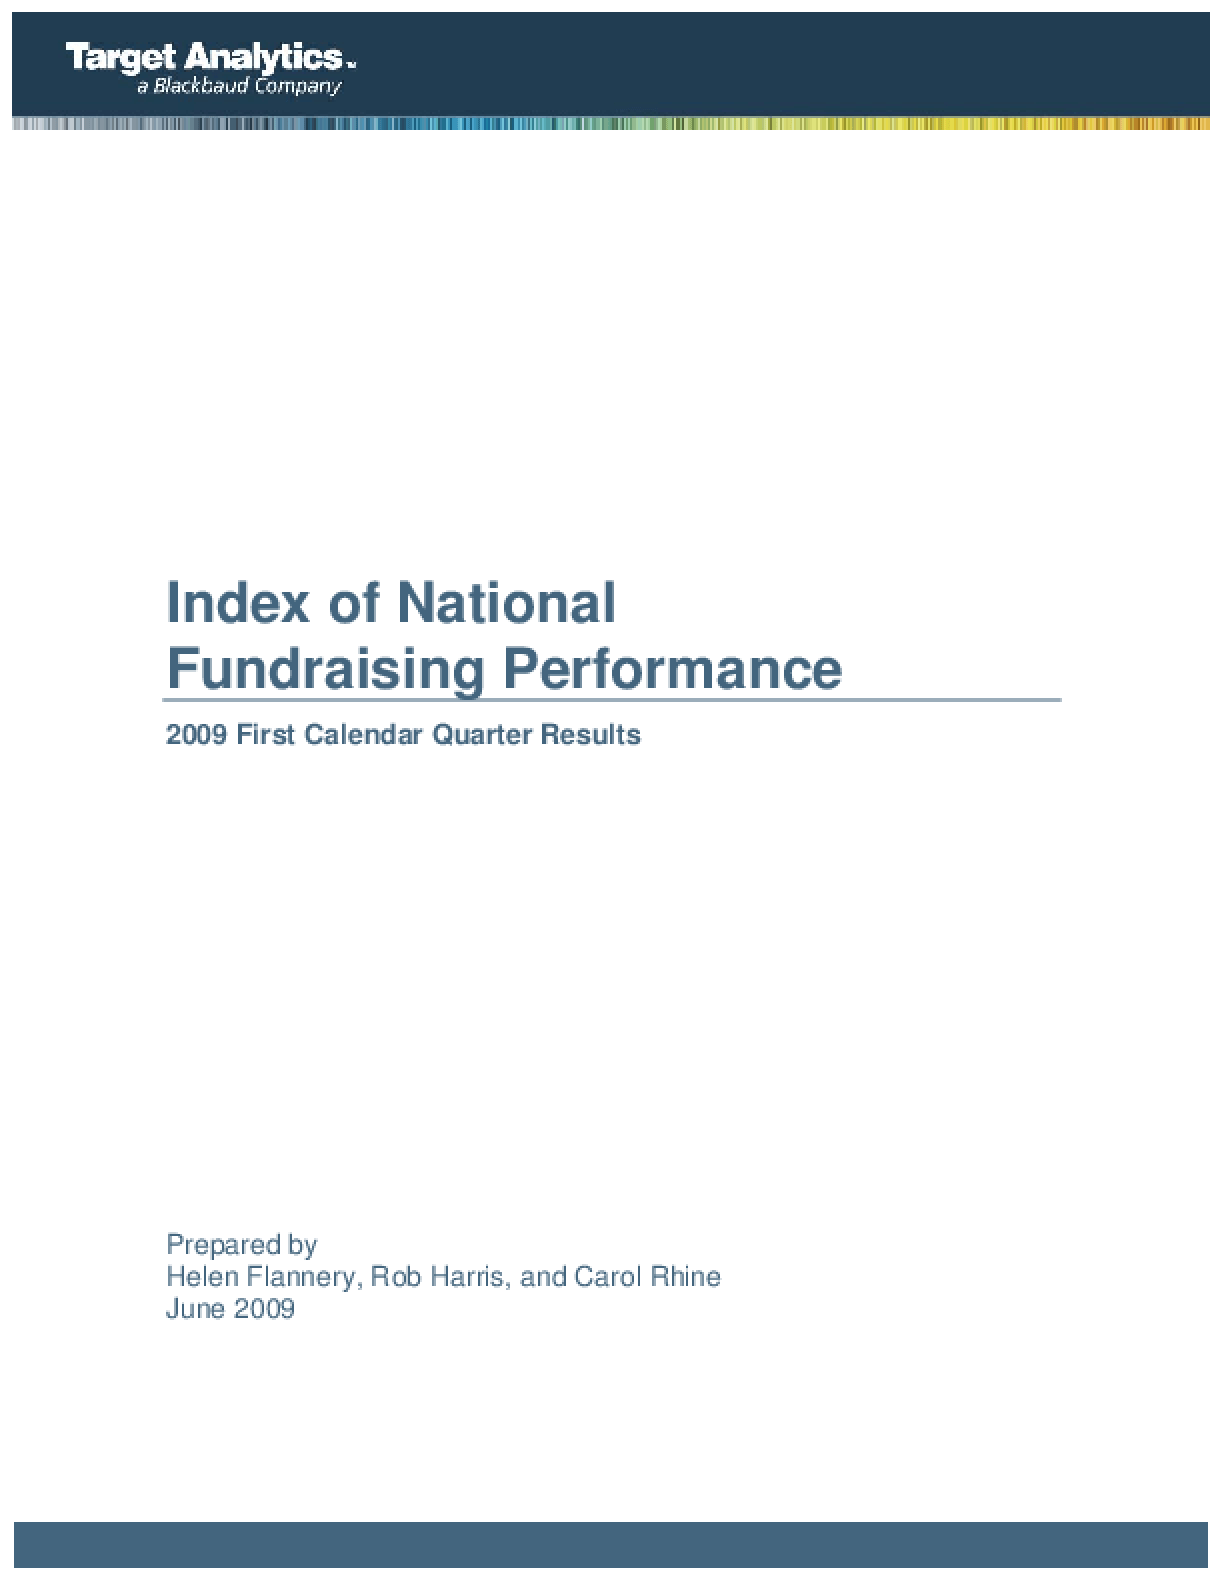 Index of National Fundraising Performance: 2009 First Calendar Quarter Results